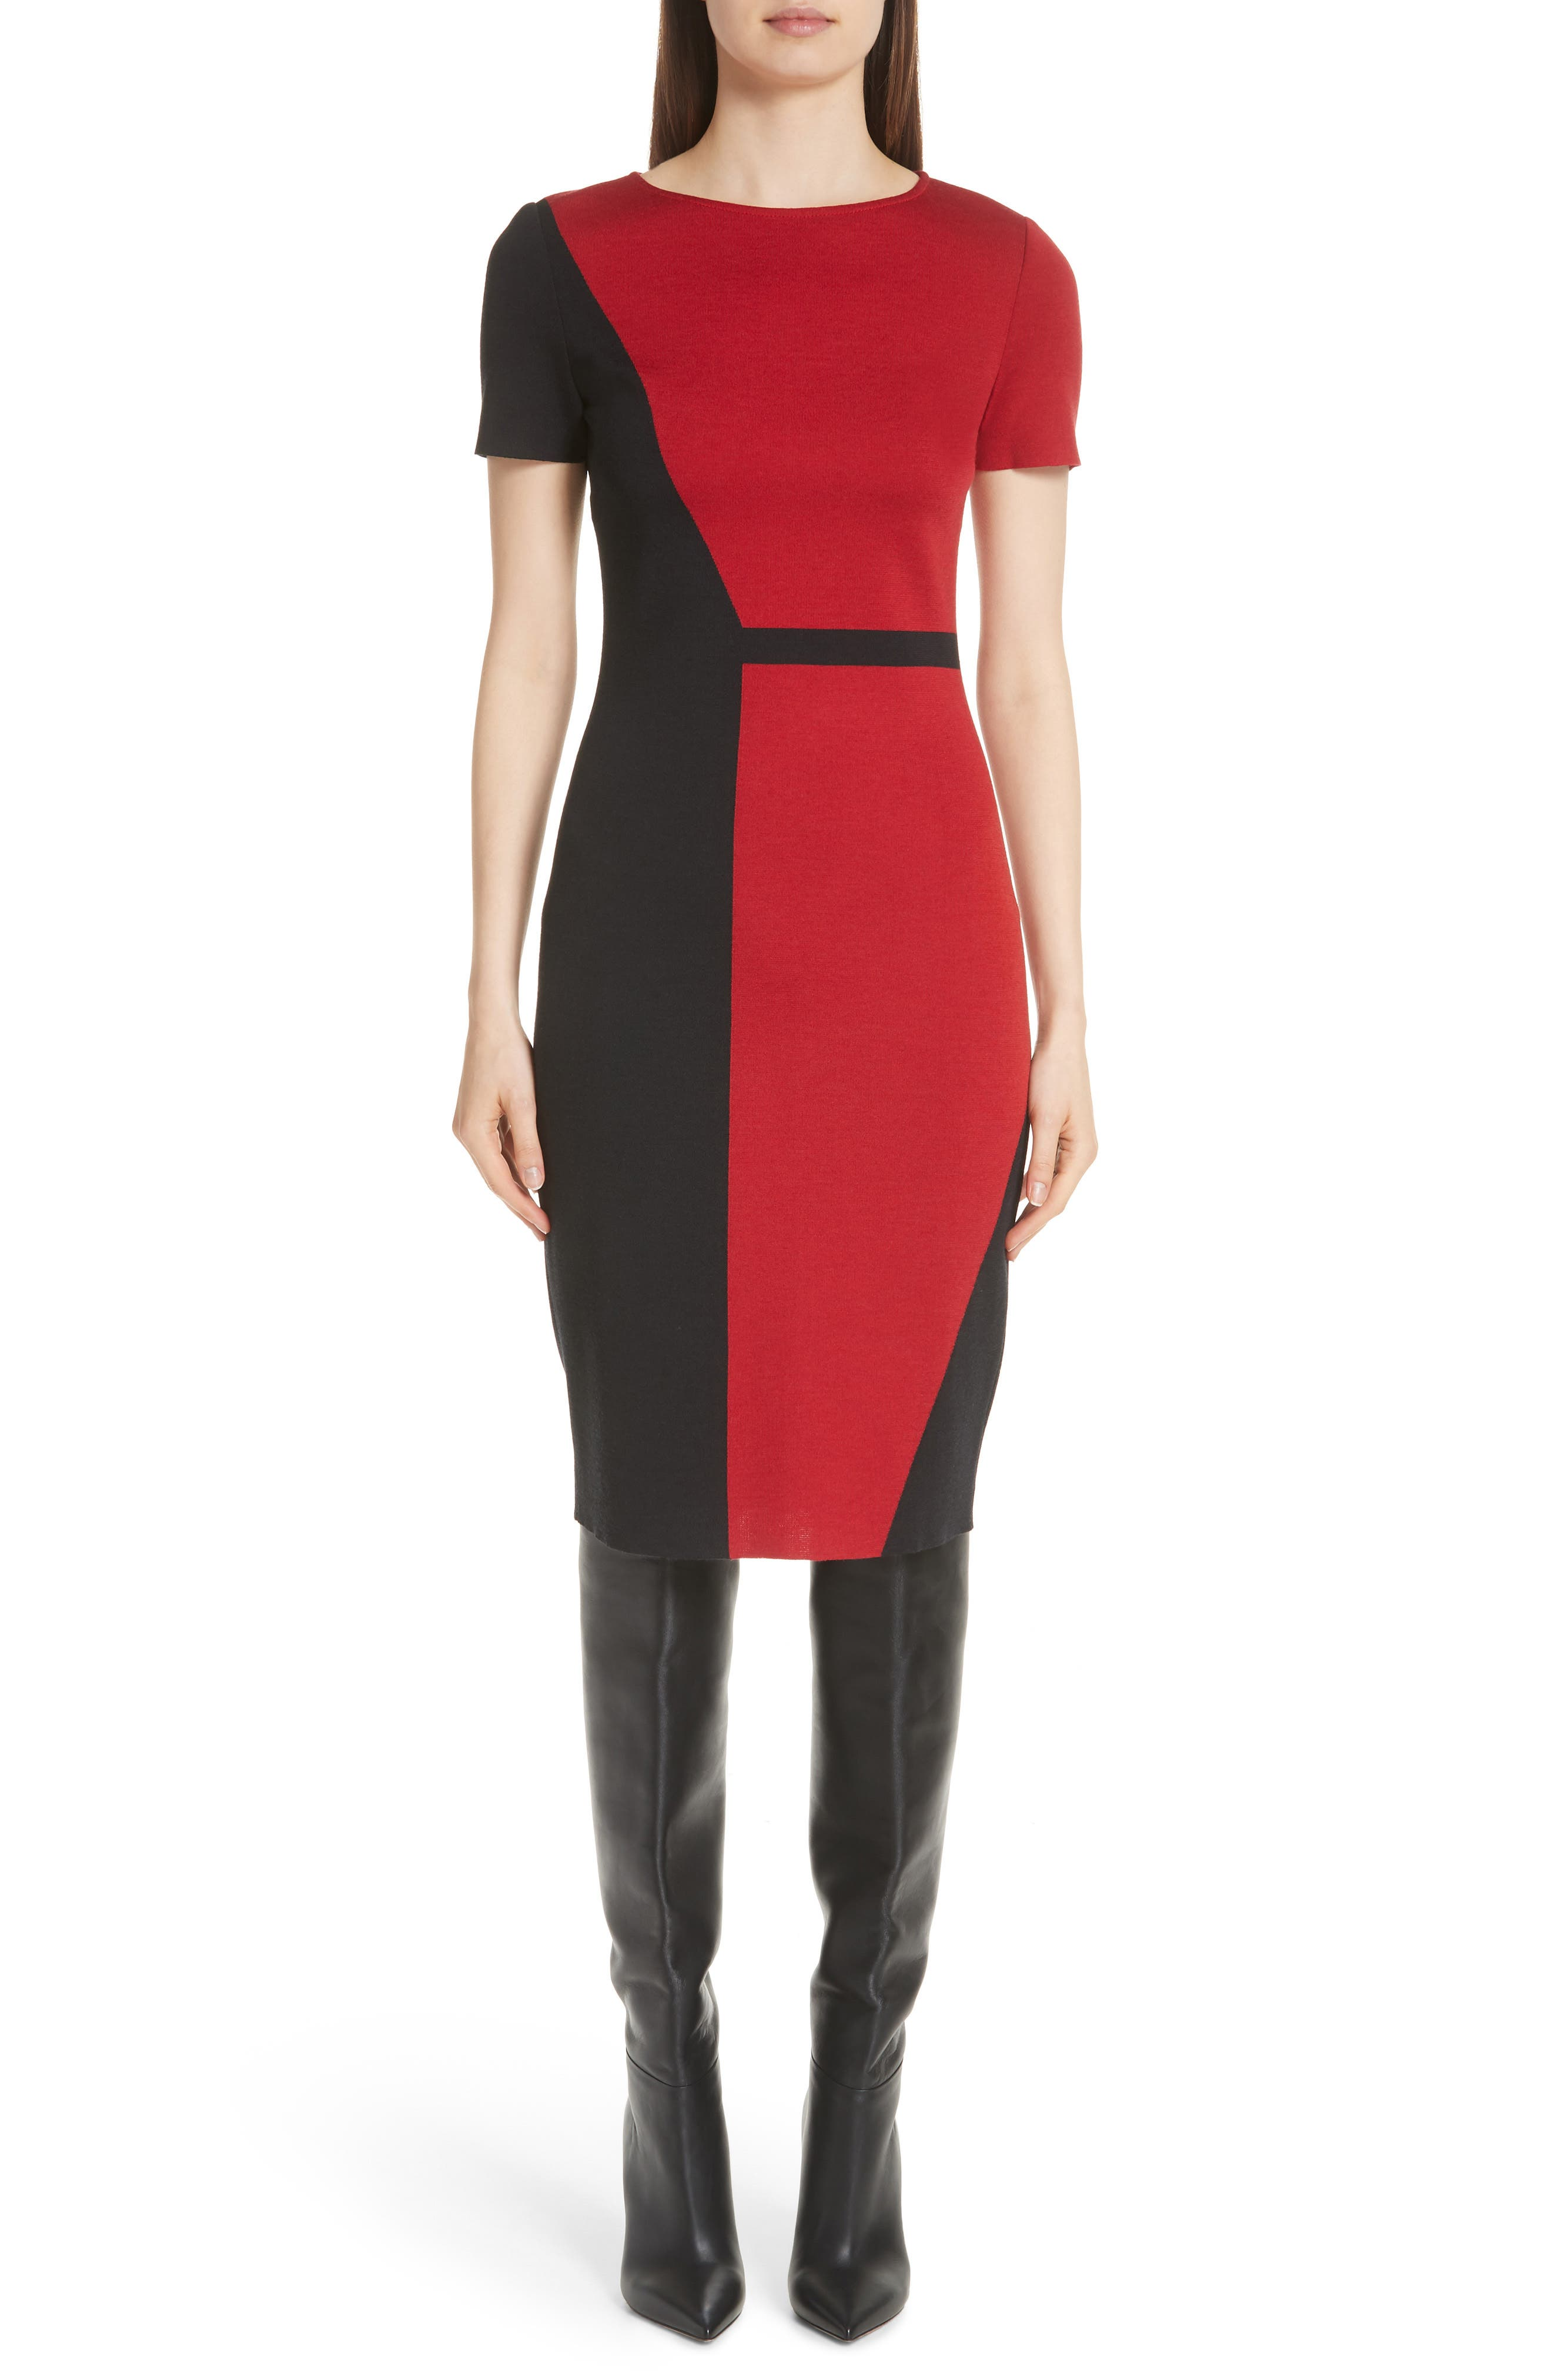 ST. JOHN COLLECTION Slanted Colorblock Milano Knit Sheath Dress, Main, color, 600